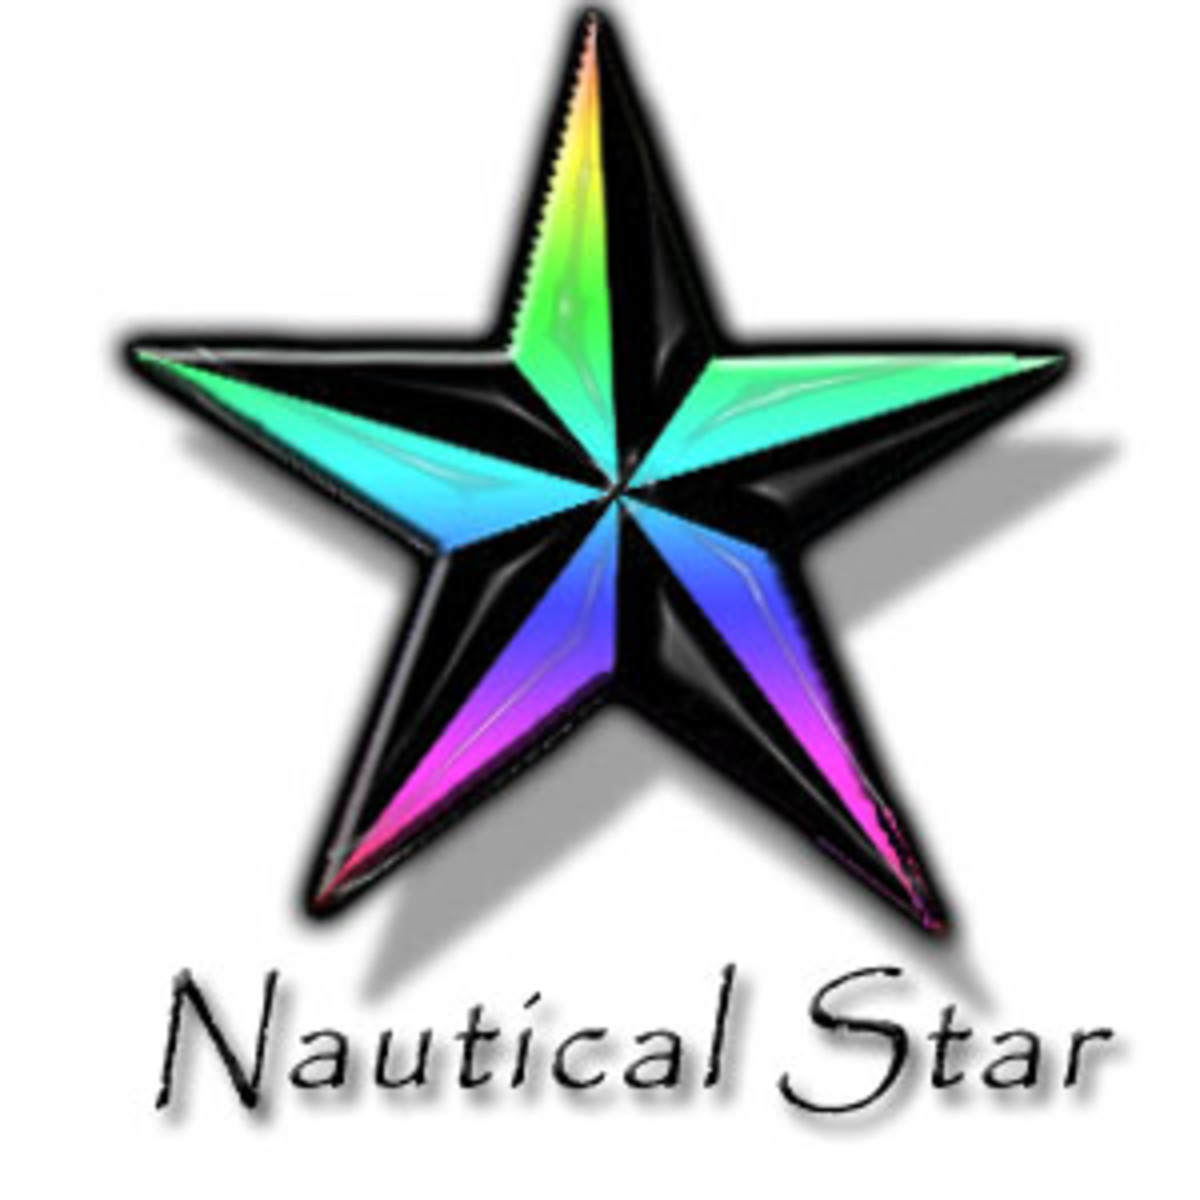 The nautical star symbolizes many things, lesbianism is just one.